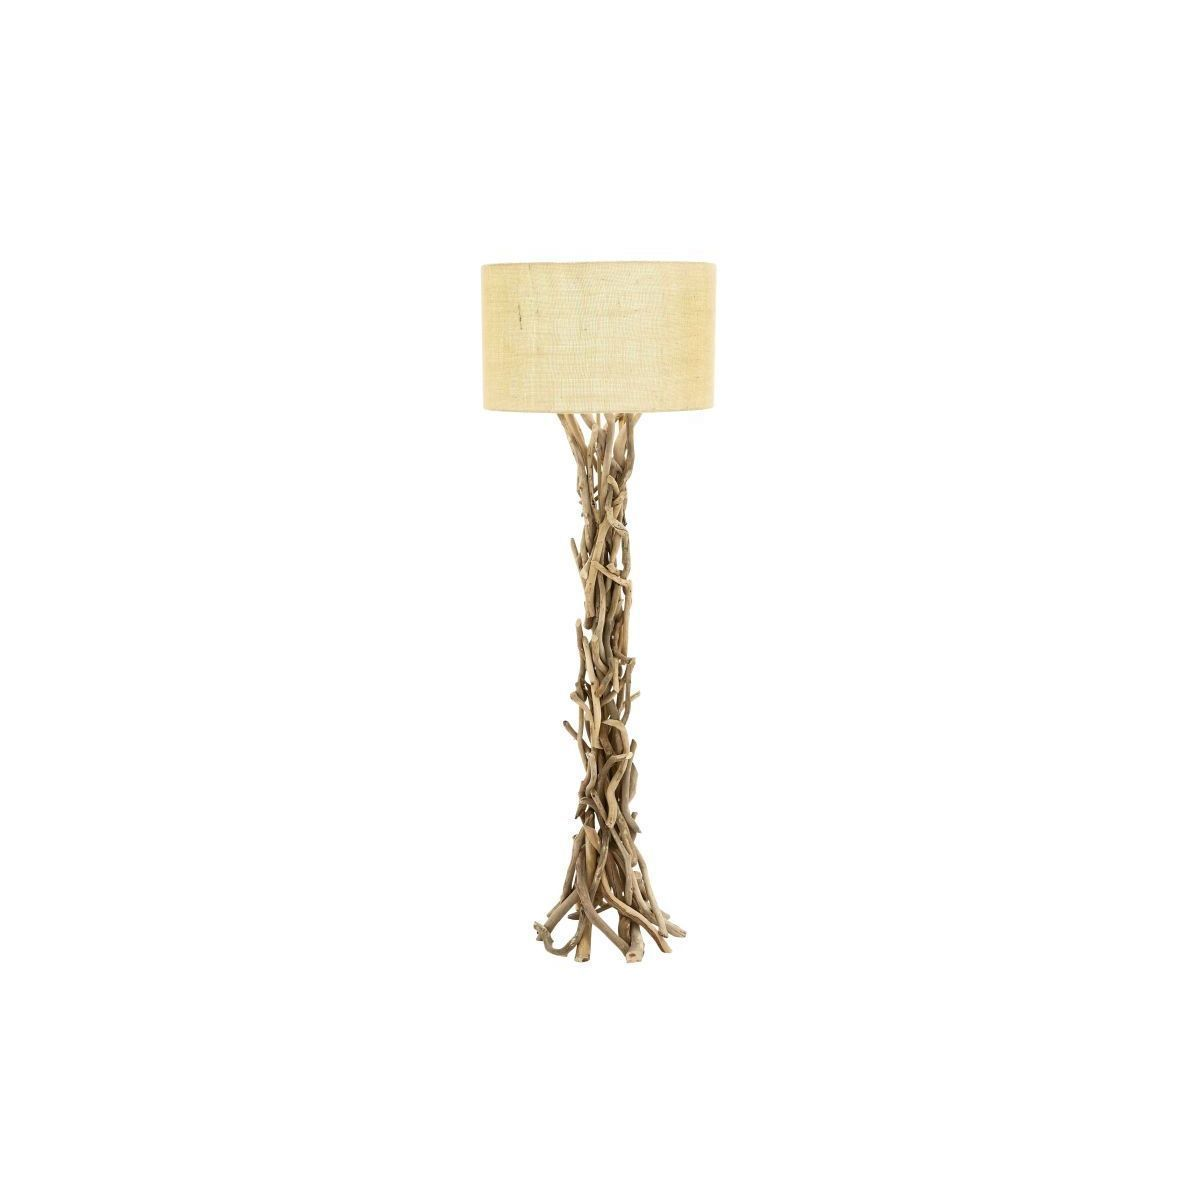 unique of ideas floor pin theme vintage furniture decorative driftwood for lamp home